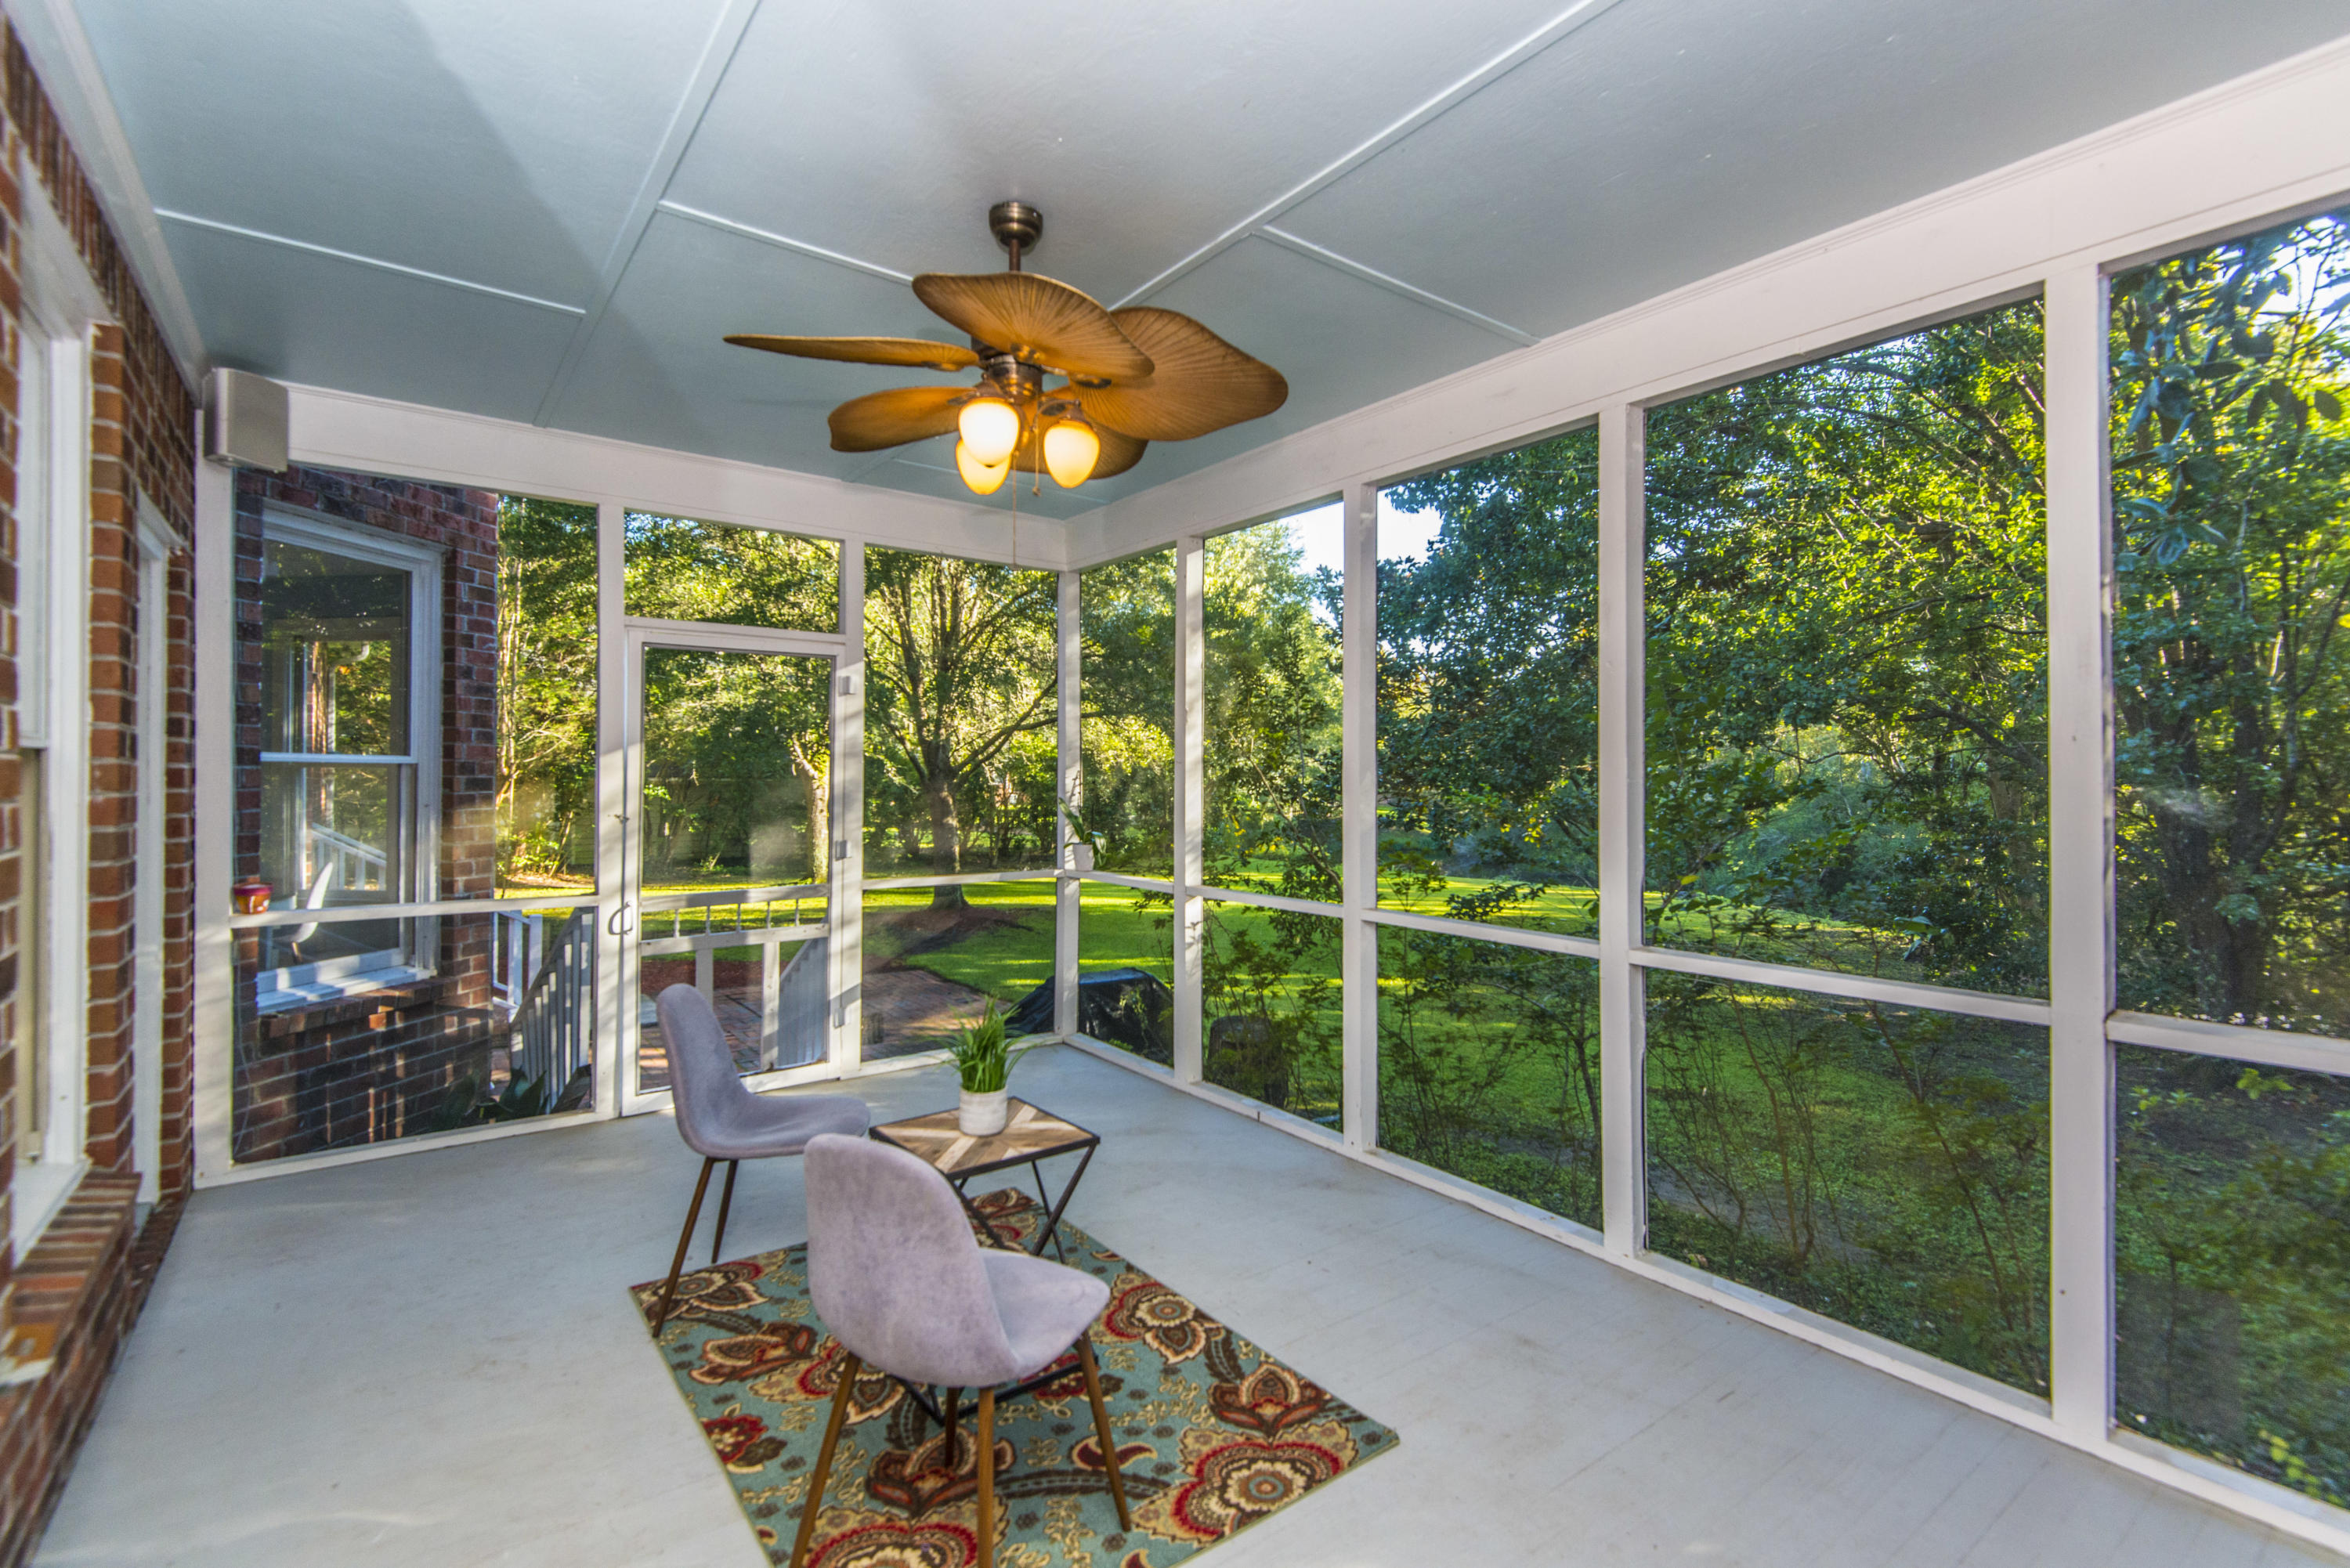 Maclaura Hall Homes For Sale - 3232 Hagerty, Charleston, SC - 0